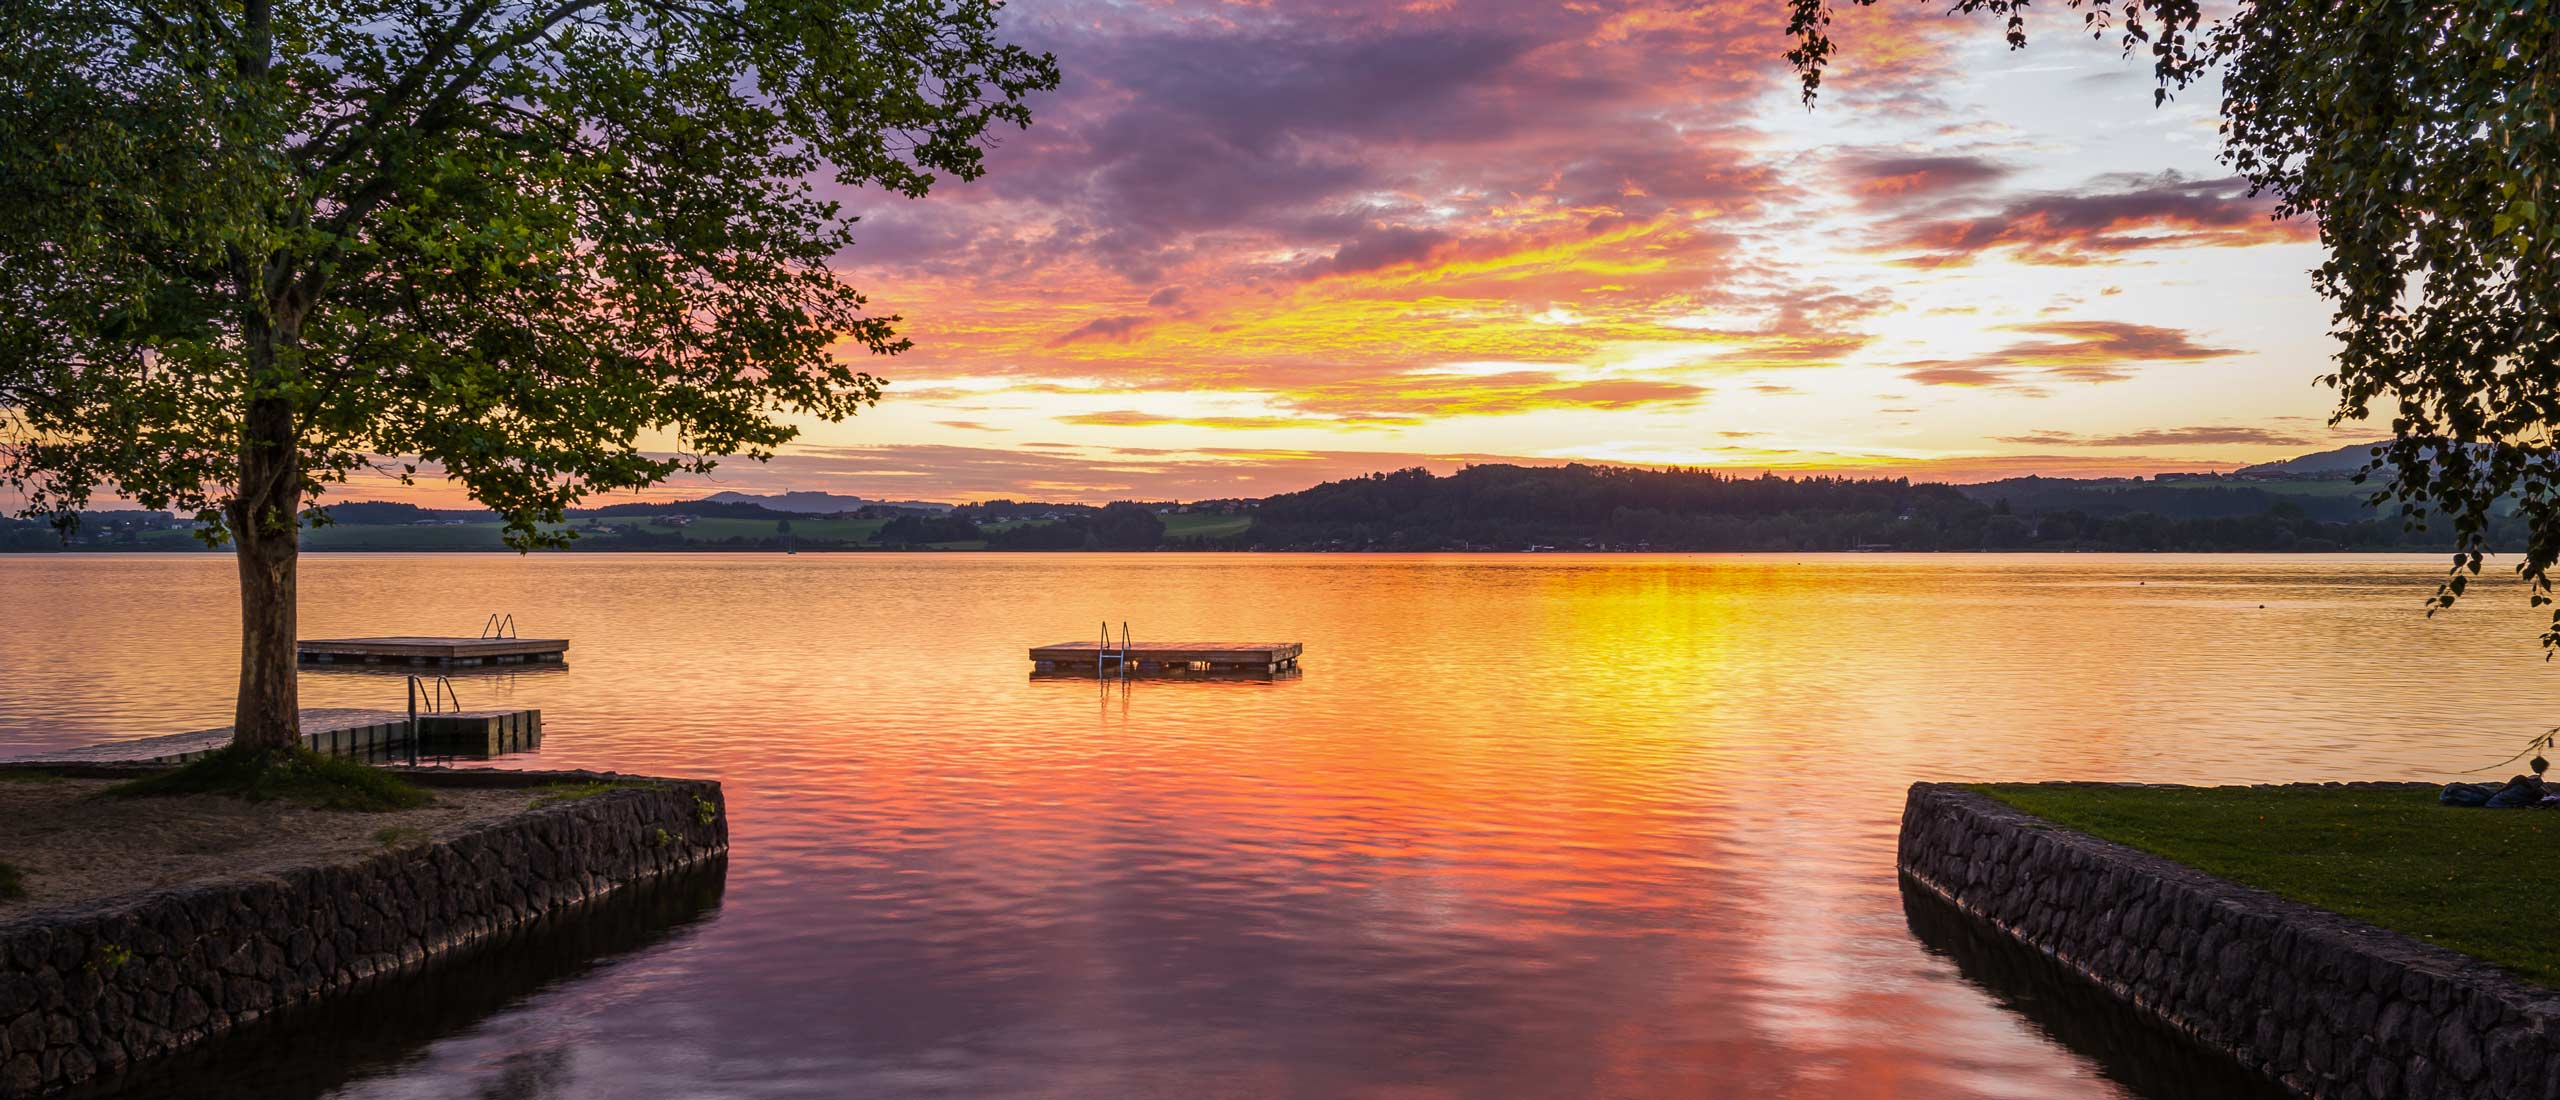 wallersee_sunset_red_2560x1100